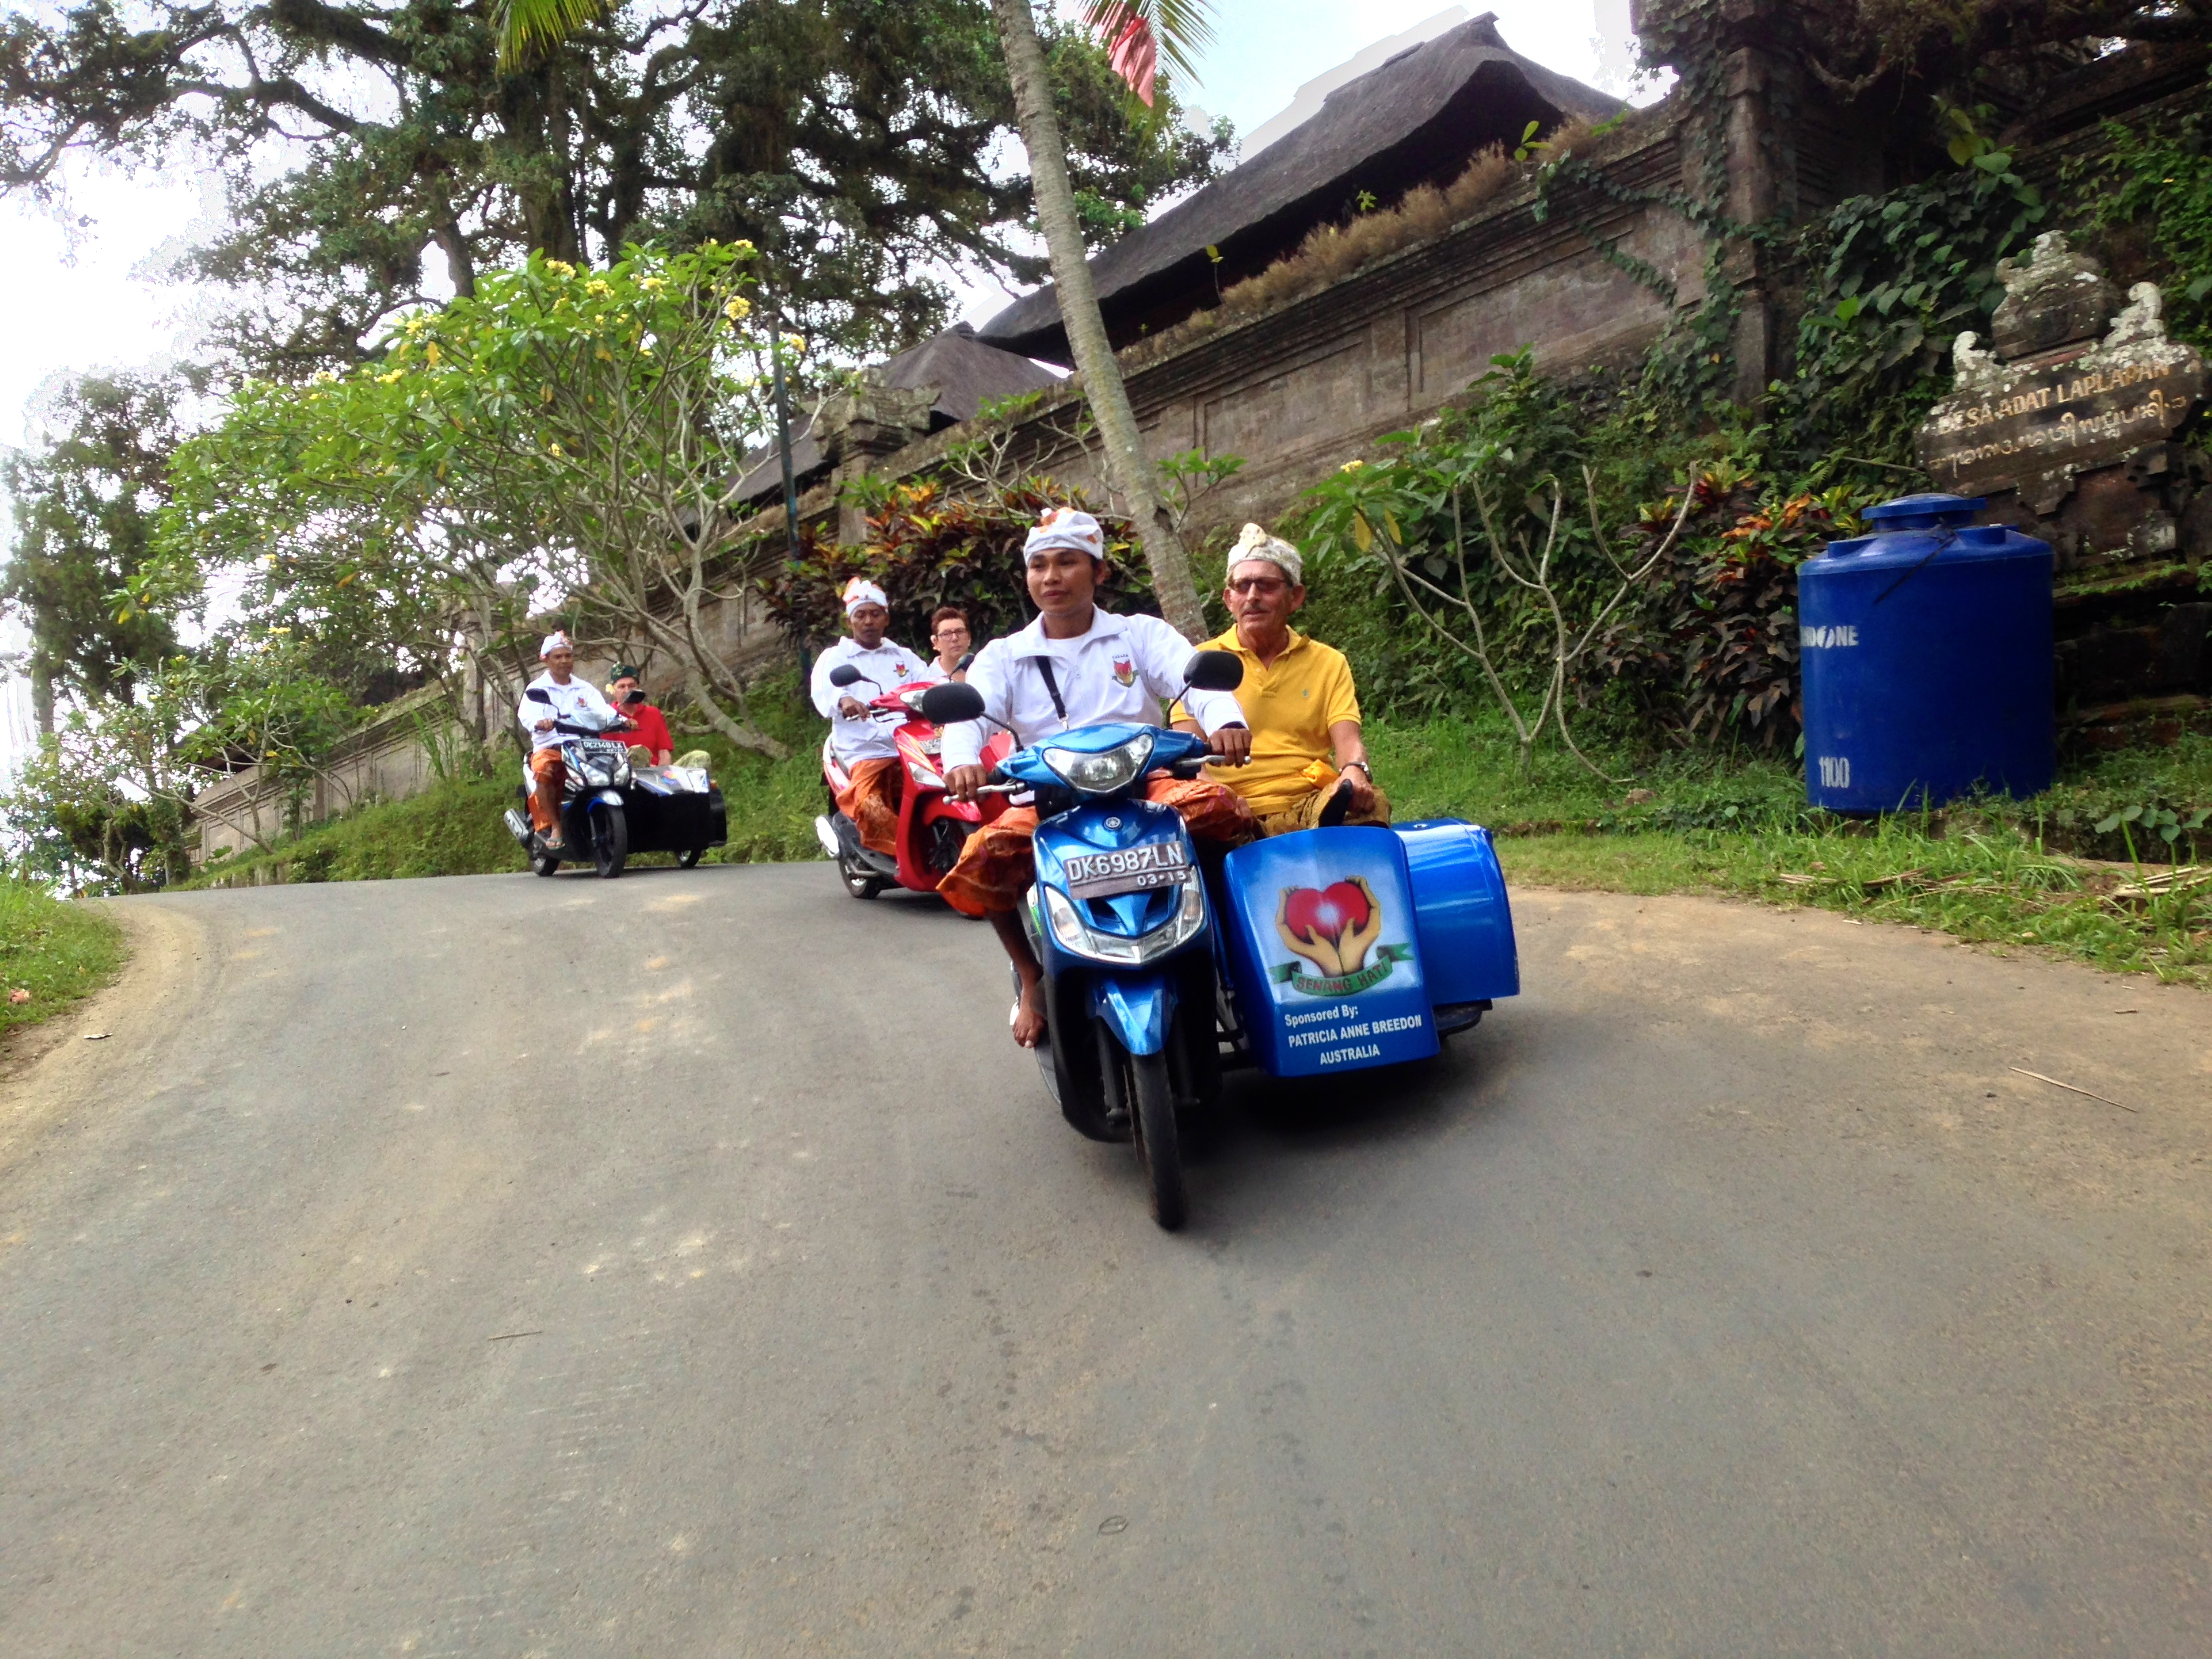 Adventure around Ubud